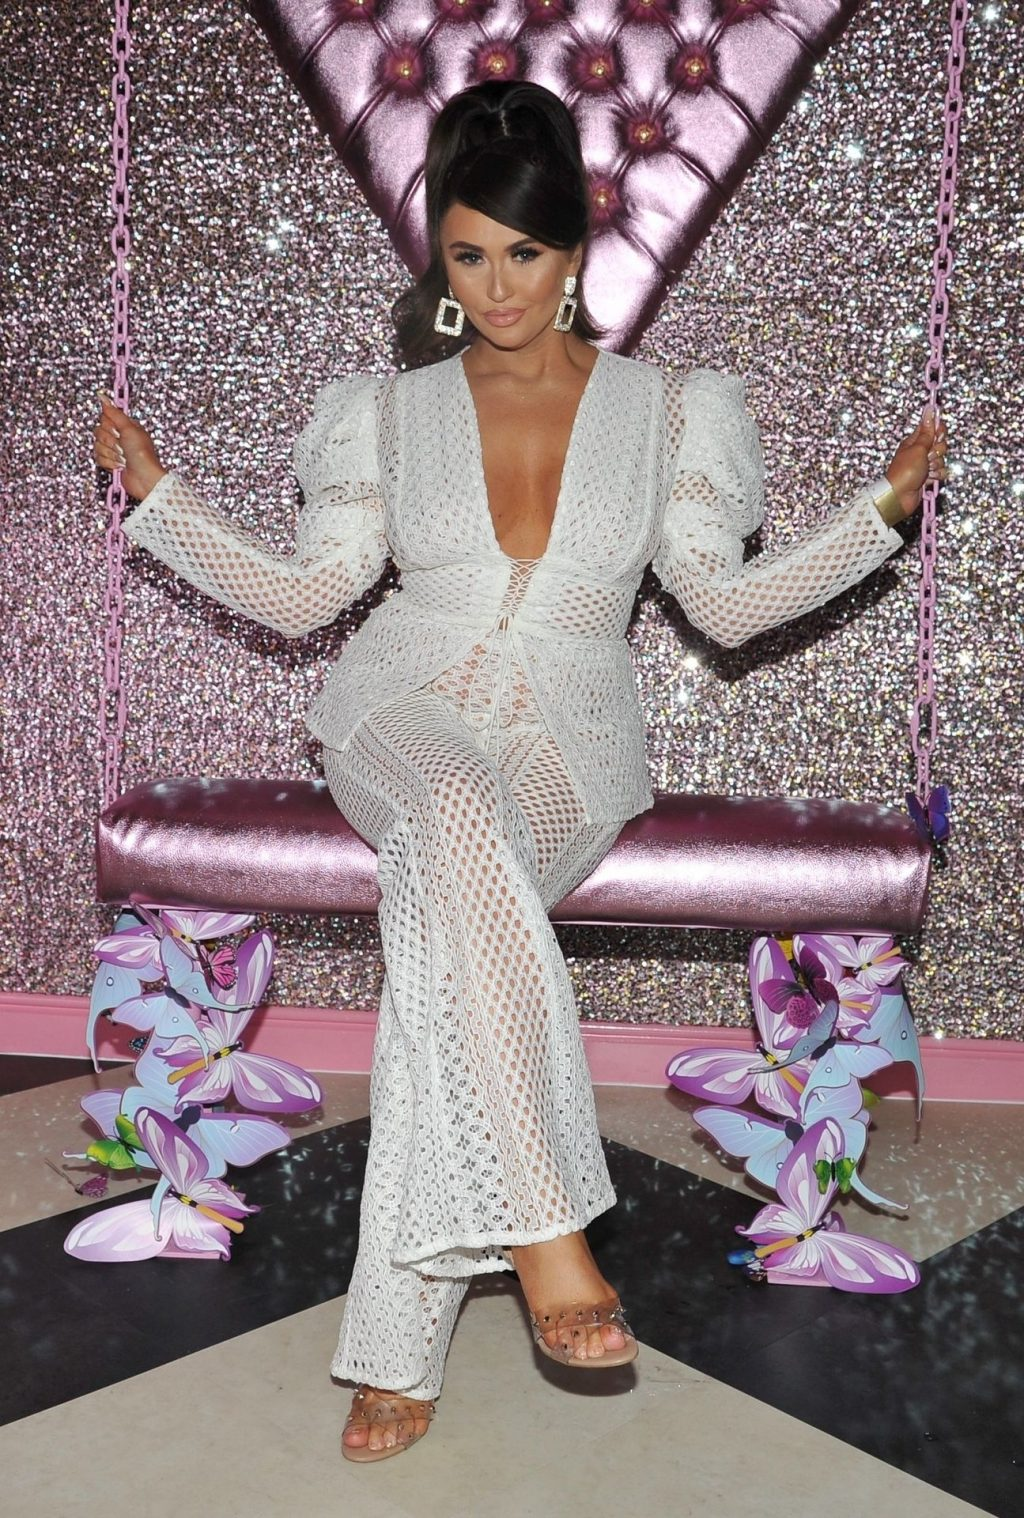 Charlotte Dawson Shows Her Boobs at Avenue Nightclub Launch Party (24 Photos)